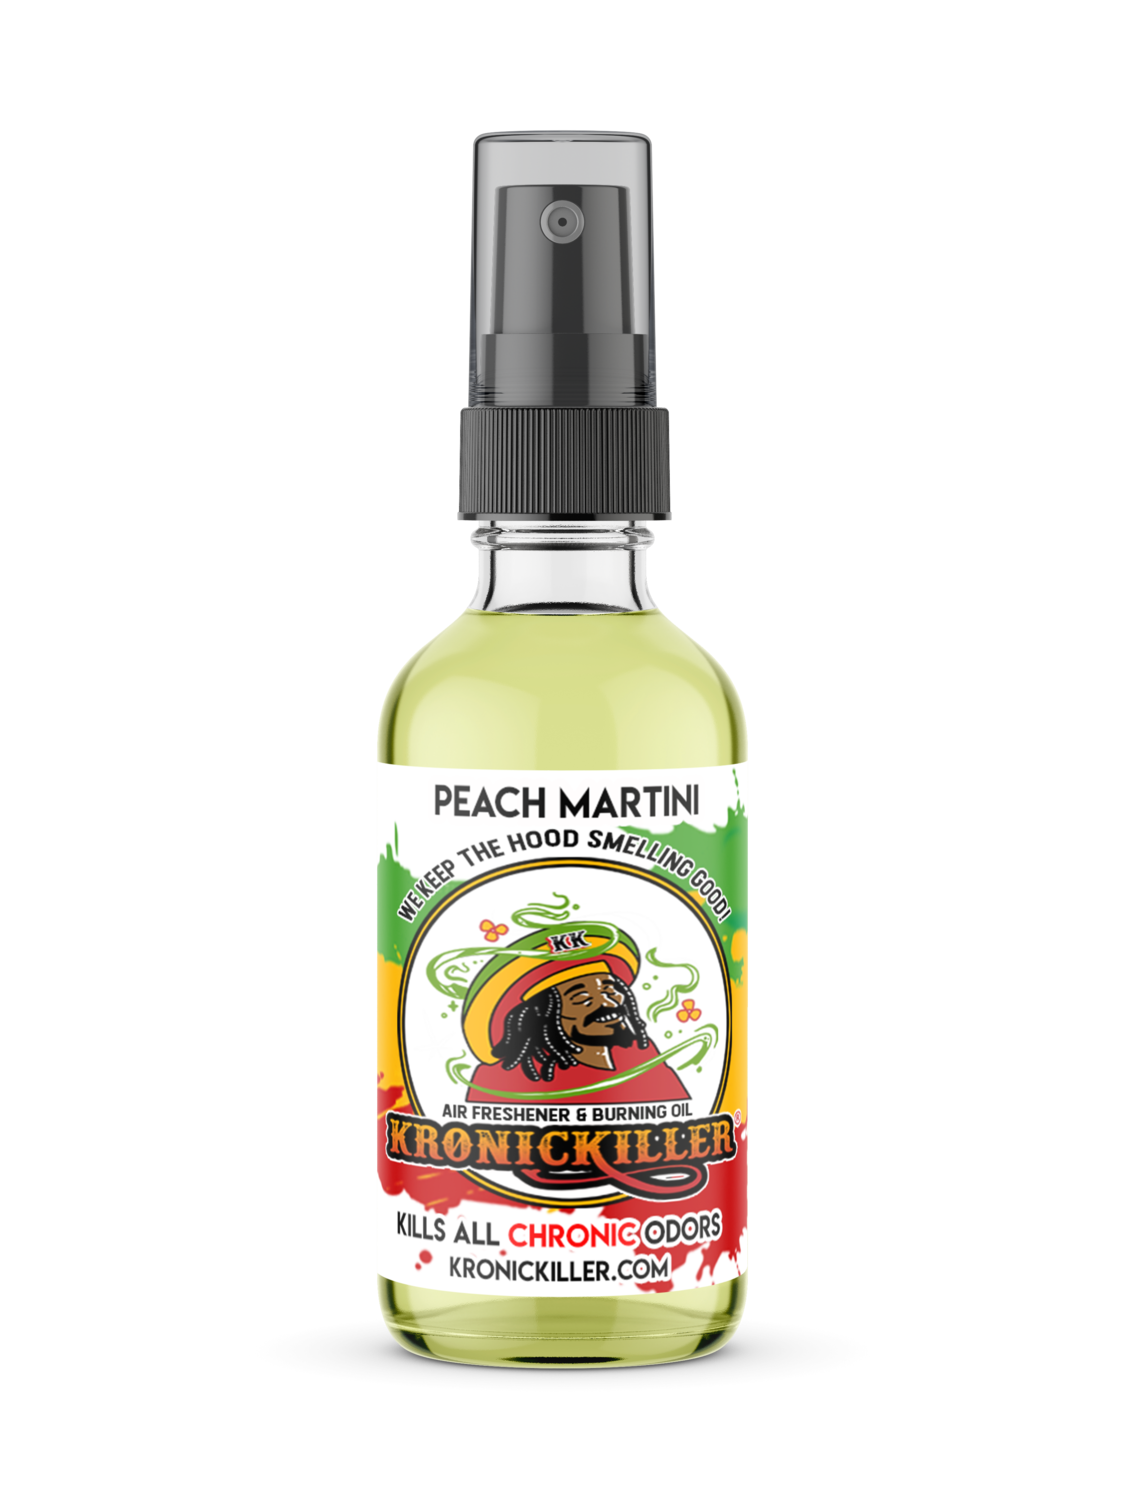 Peach Martini Air Freshener & Burning Oil